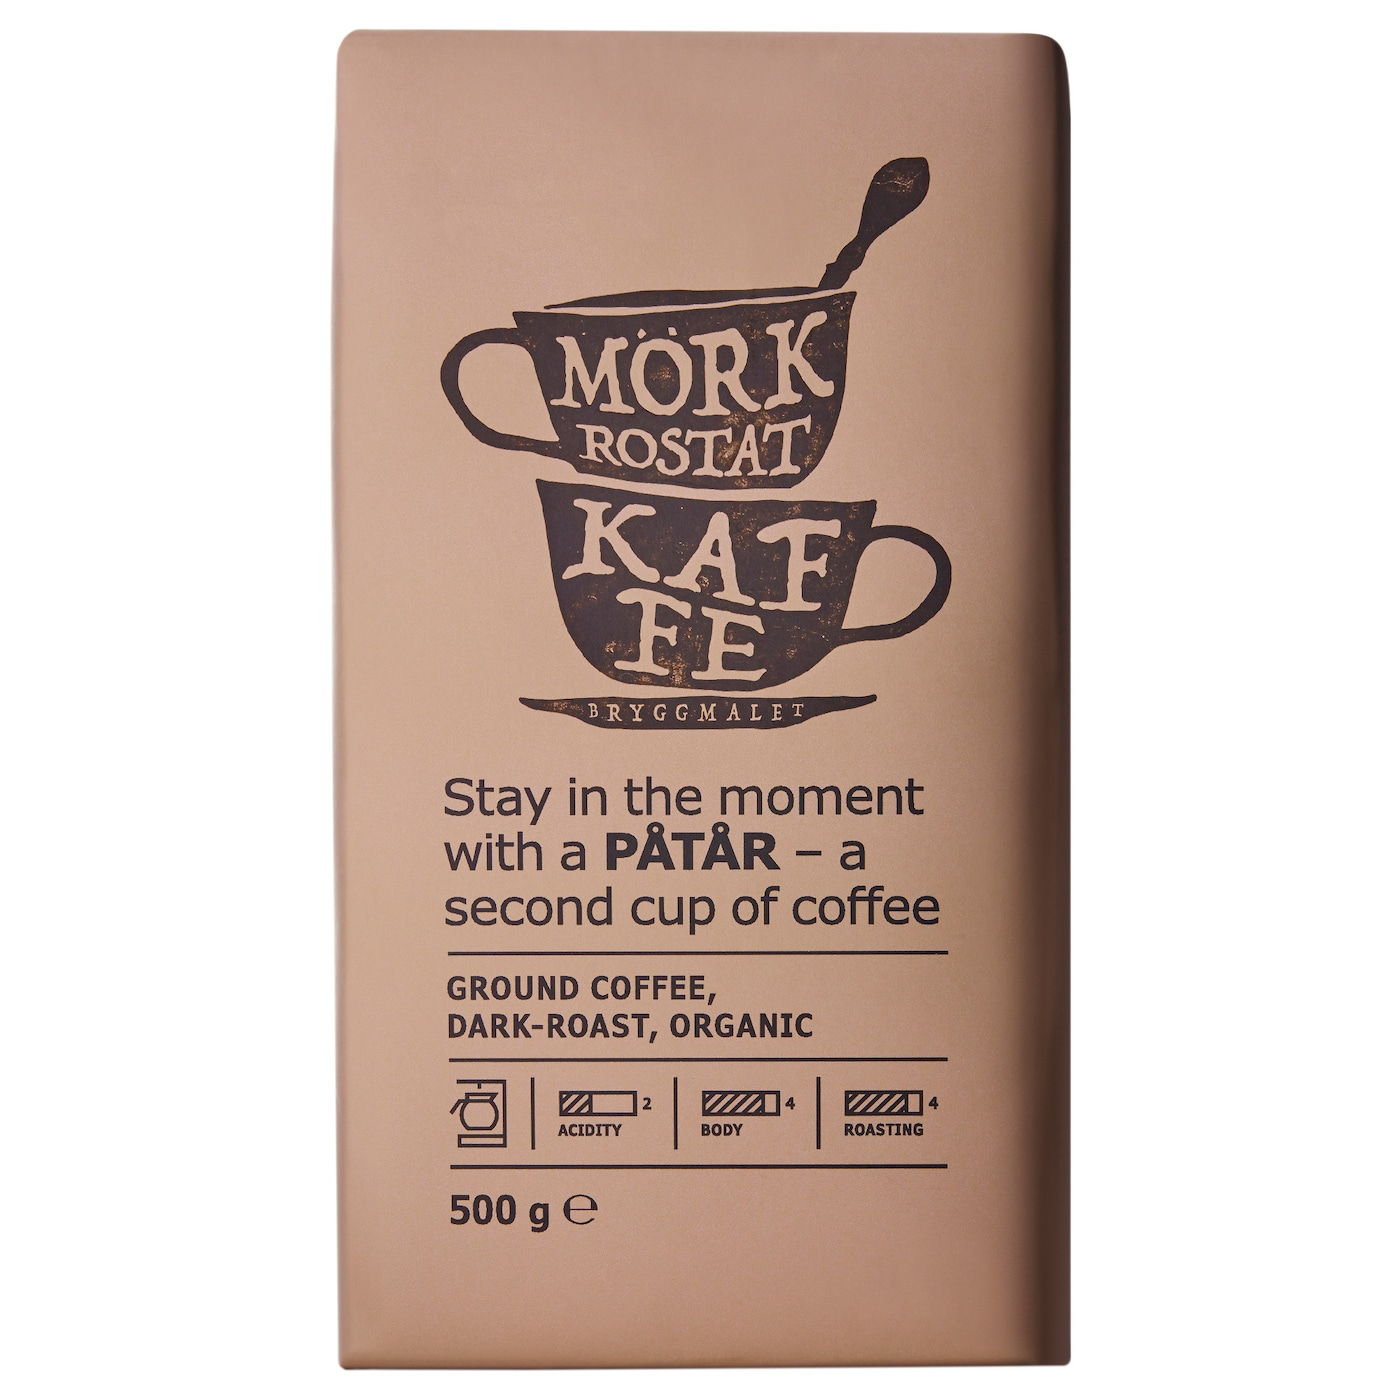 IKEA PÅTÅR filter coffee, dark roast